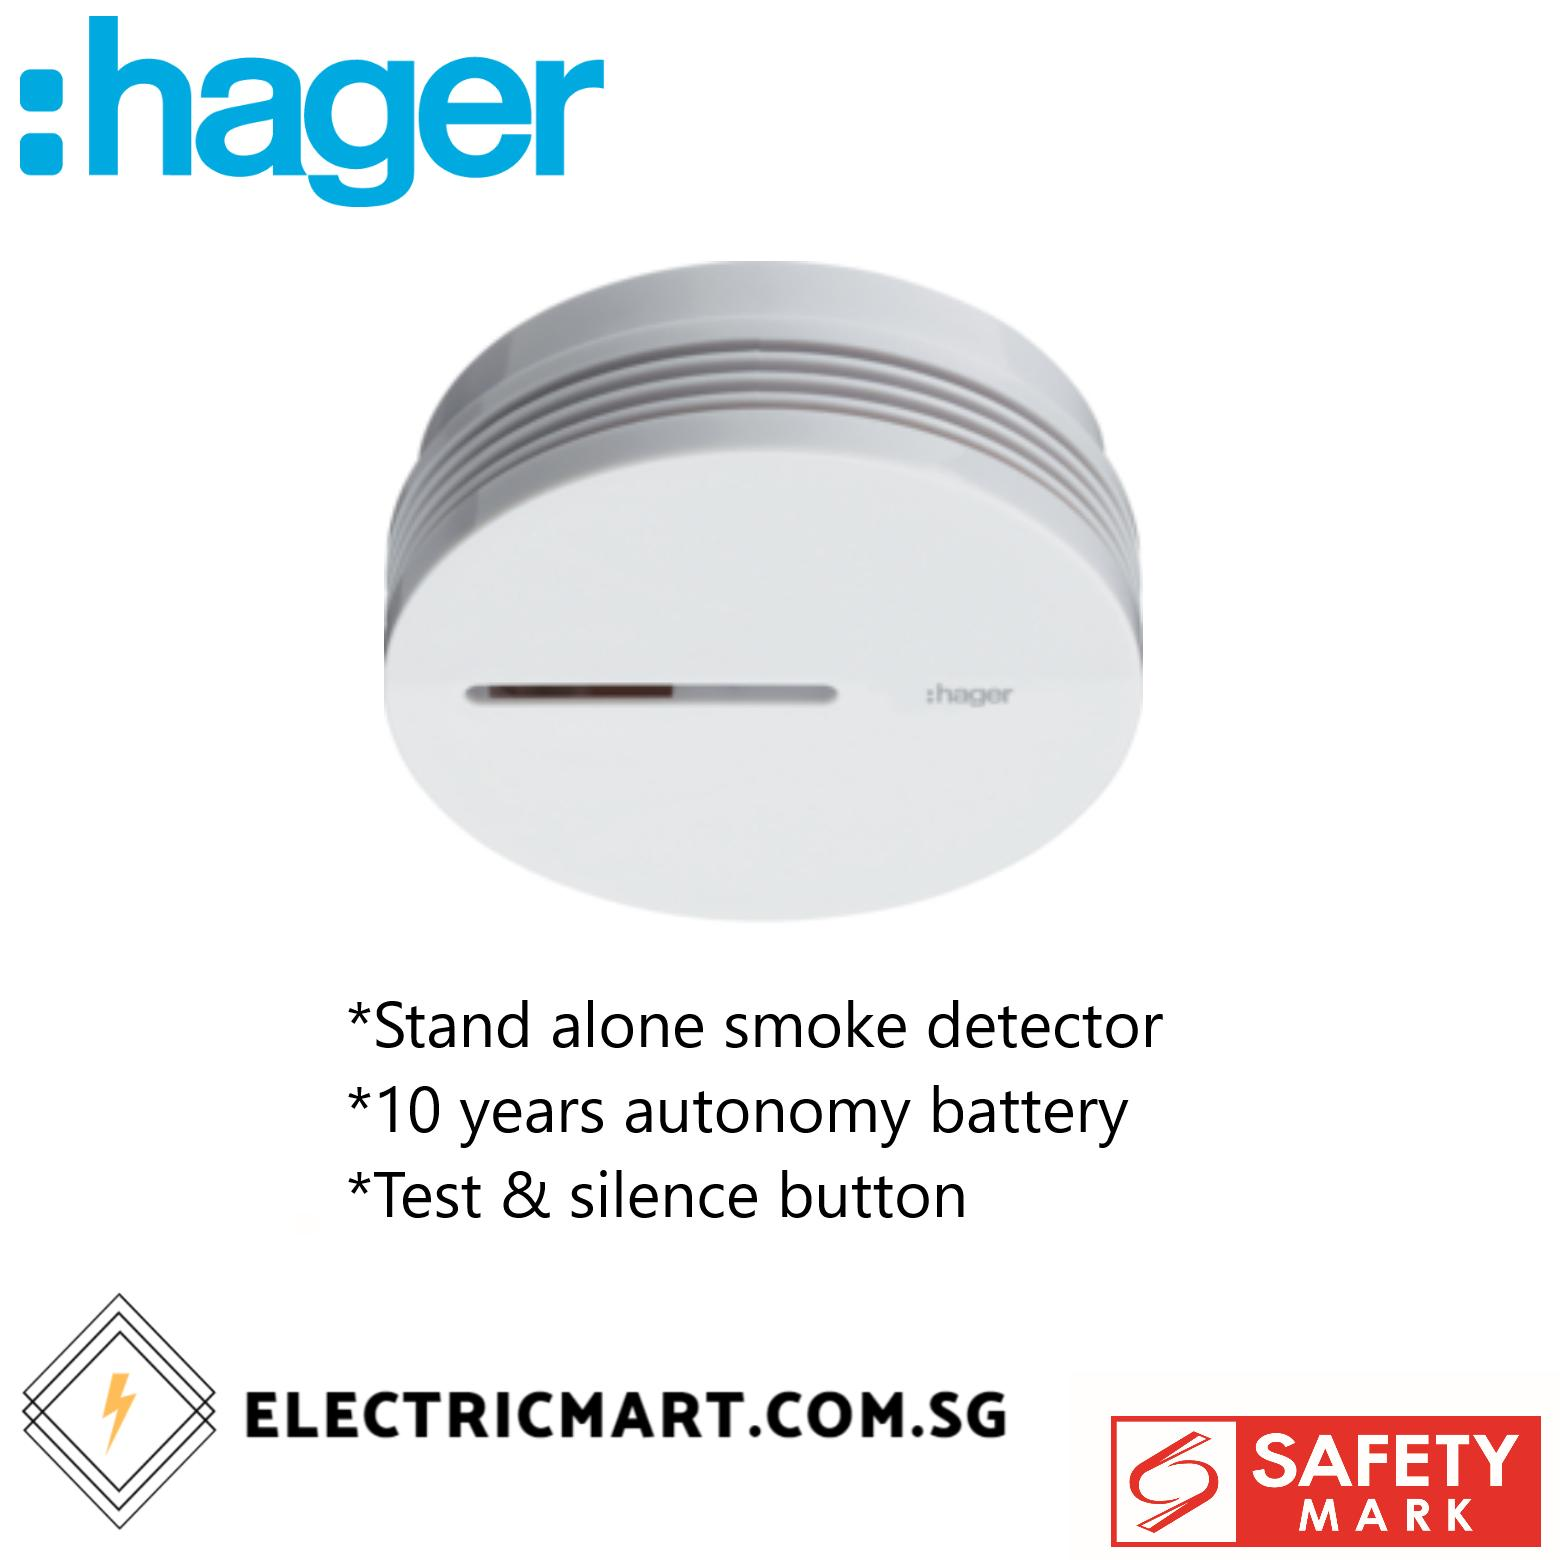 Hager TG600AL Stand Alone Smoke Detector